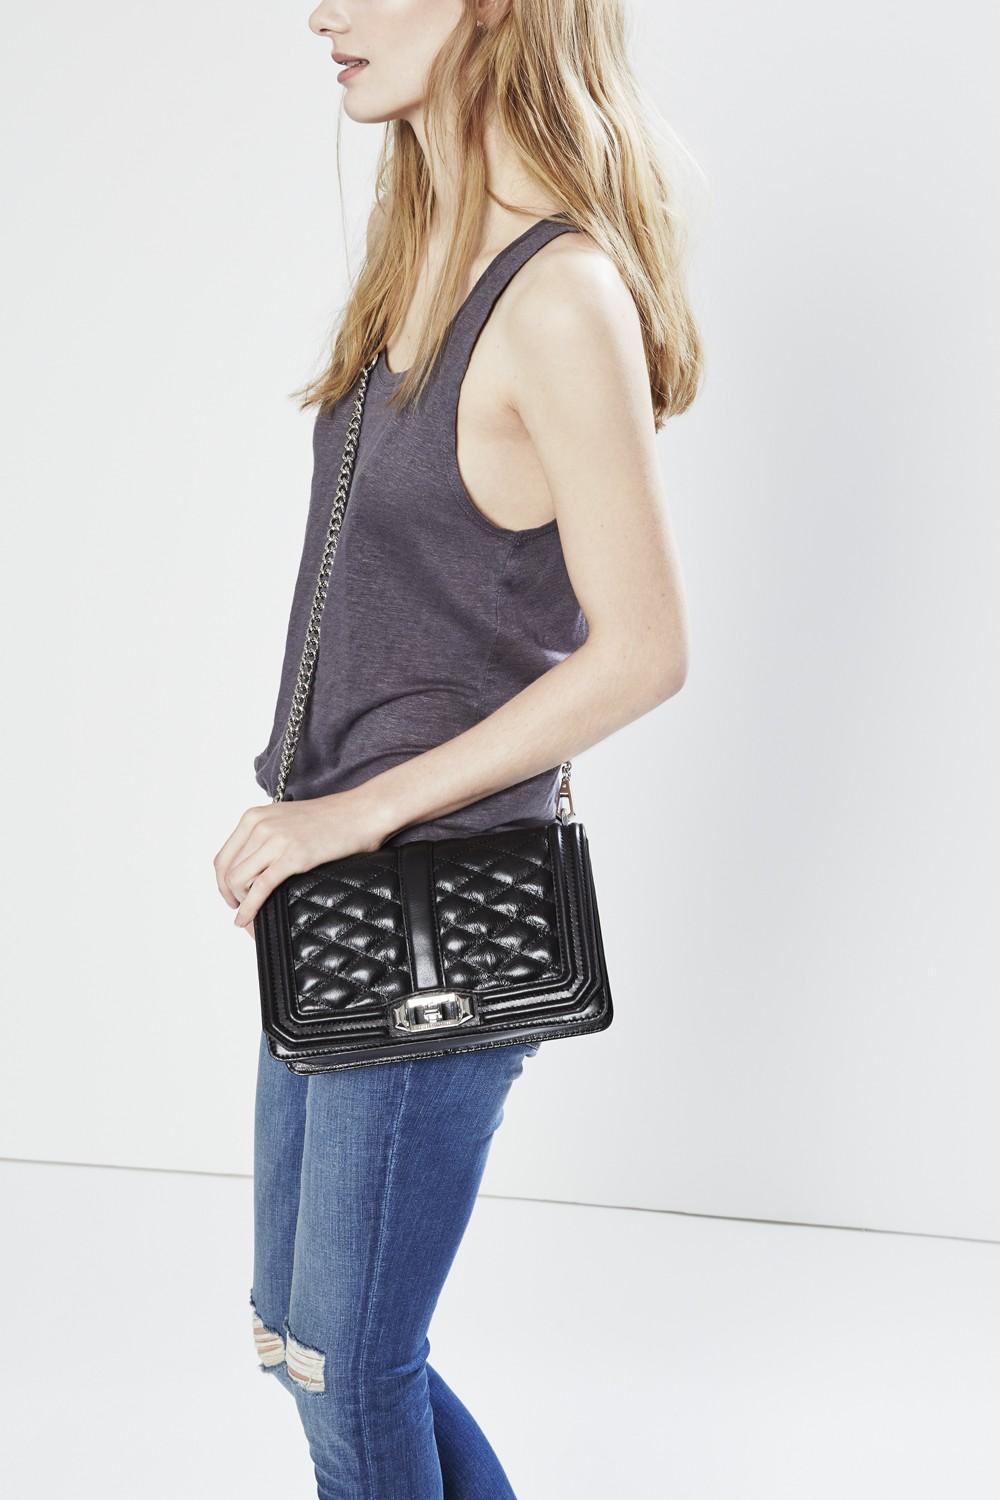 Extra 30% Off Rebecca Minkoff Love Crossbody Shoulder Bag @ Amazon.com